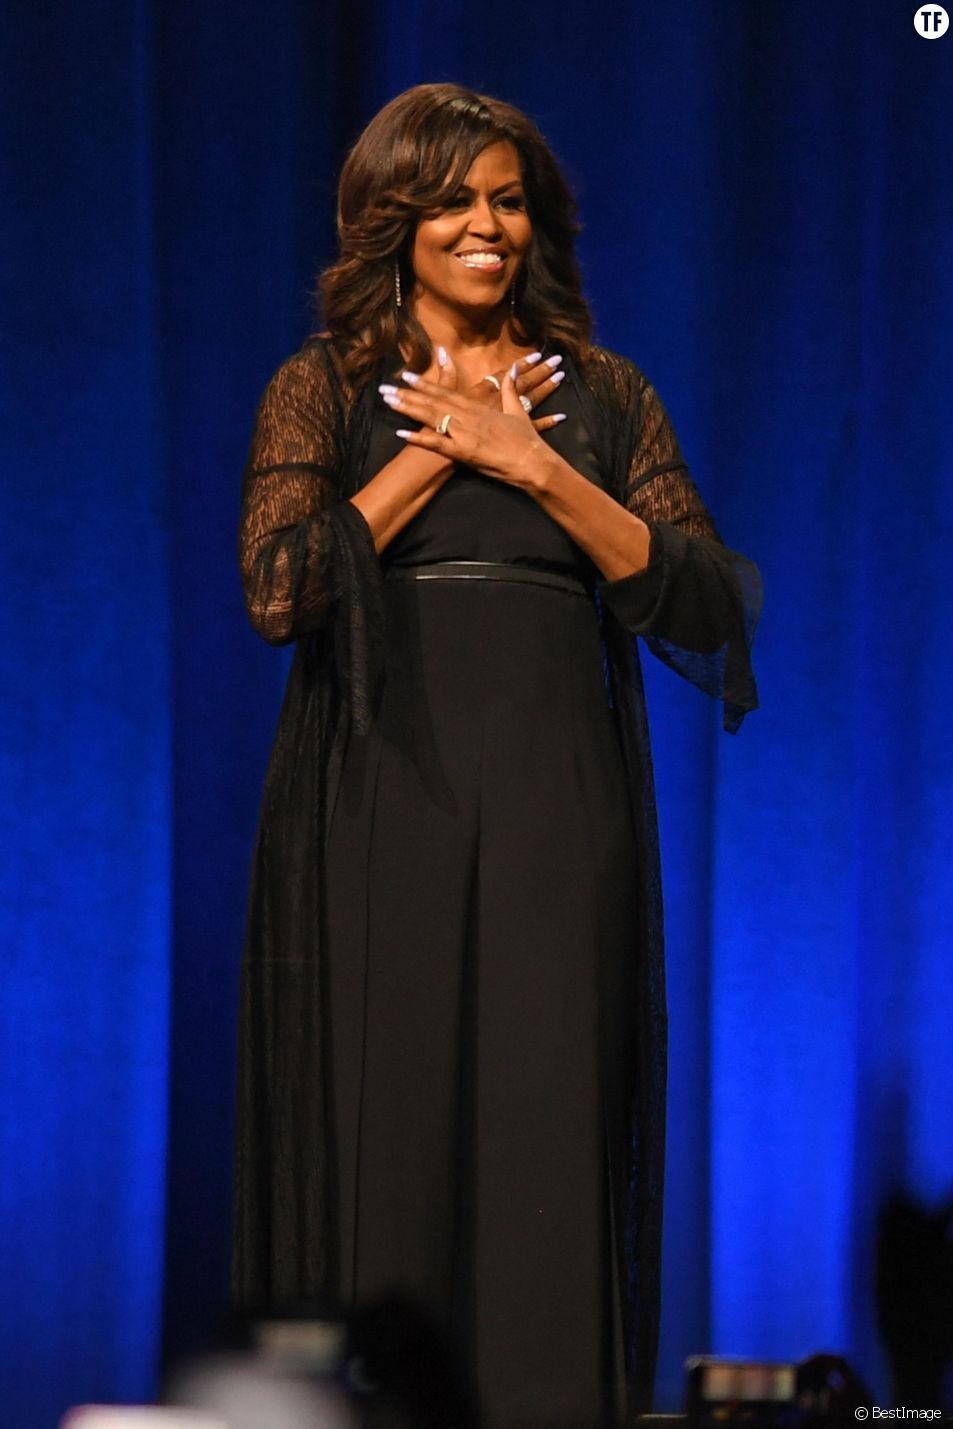 Michelle Obama en promo pour son livre 'Becoming' au BB&T Center à Sunrise en Floride, le 10 mai 2019